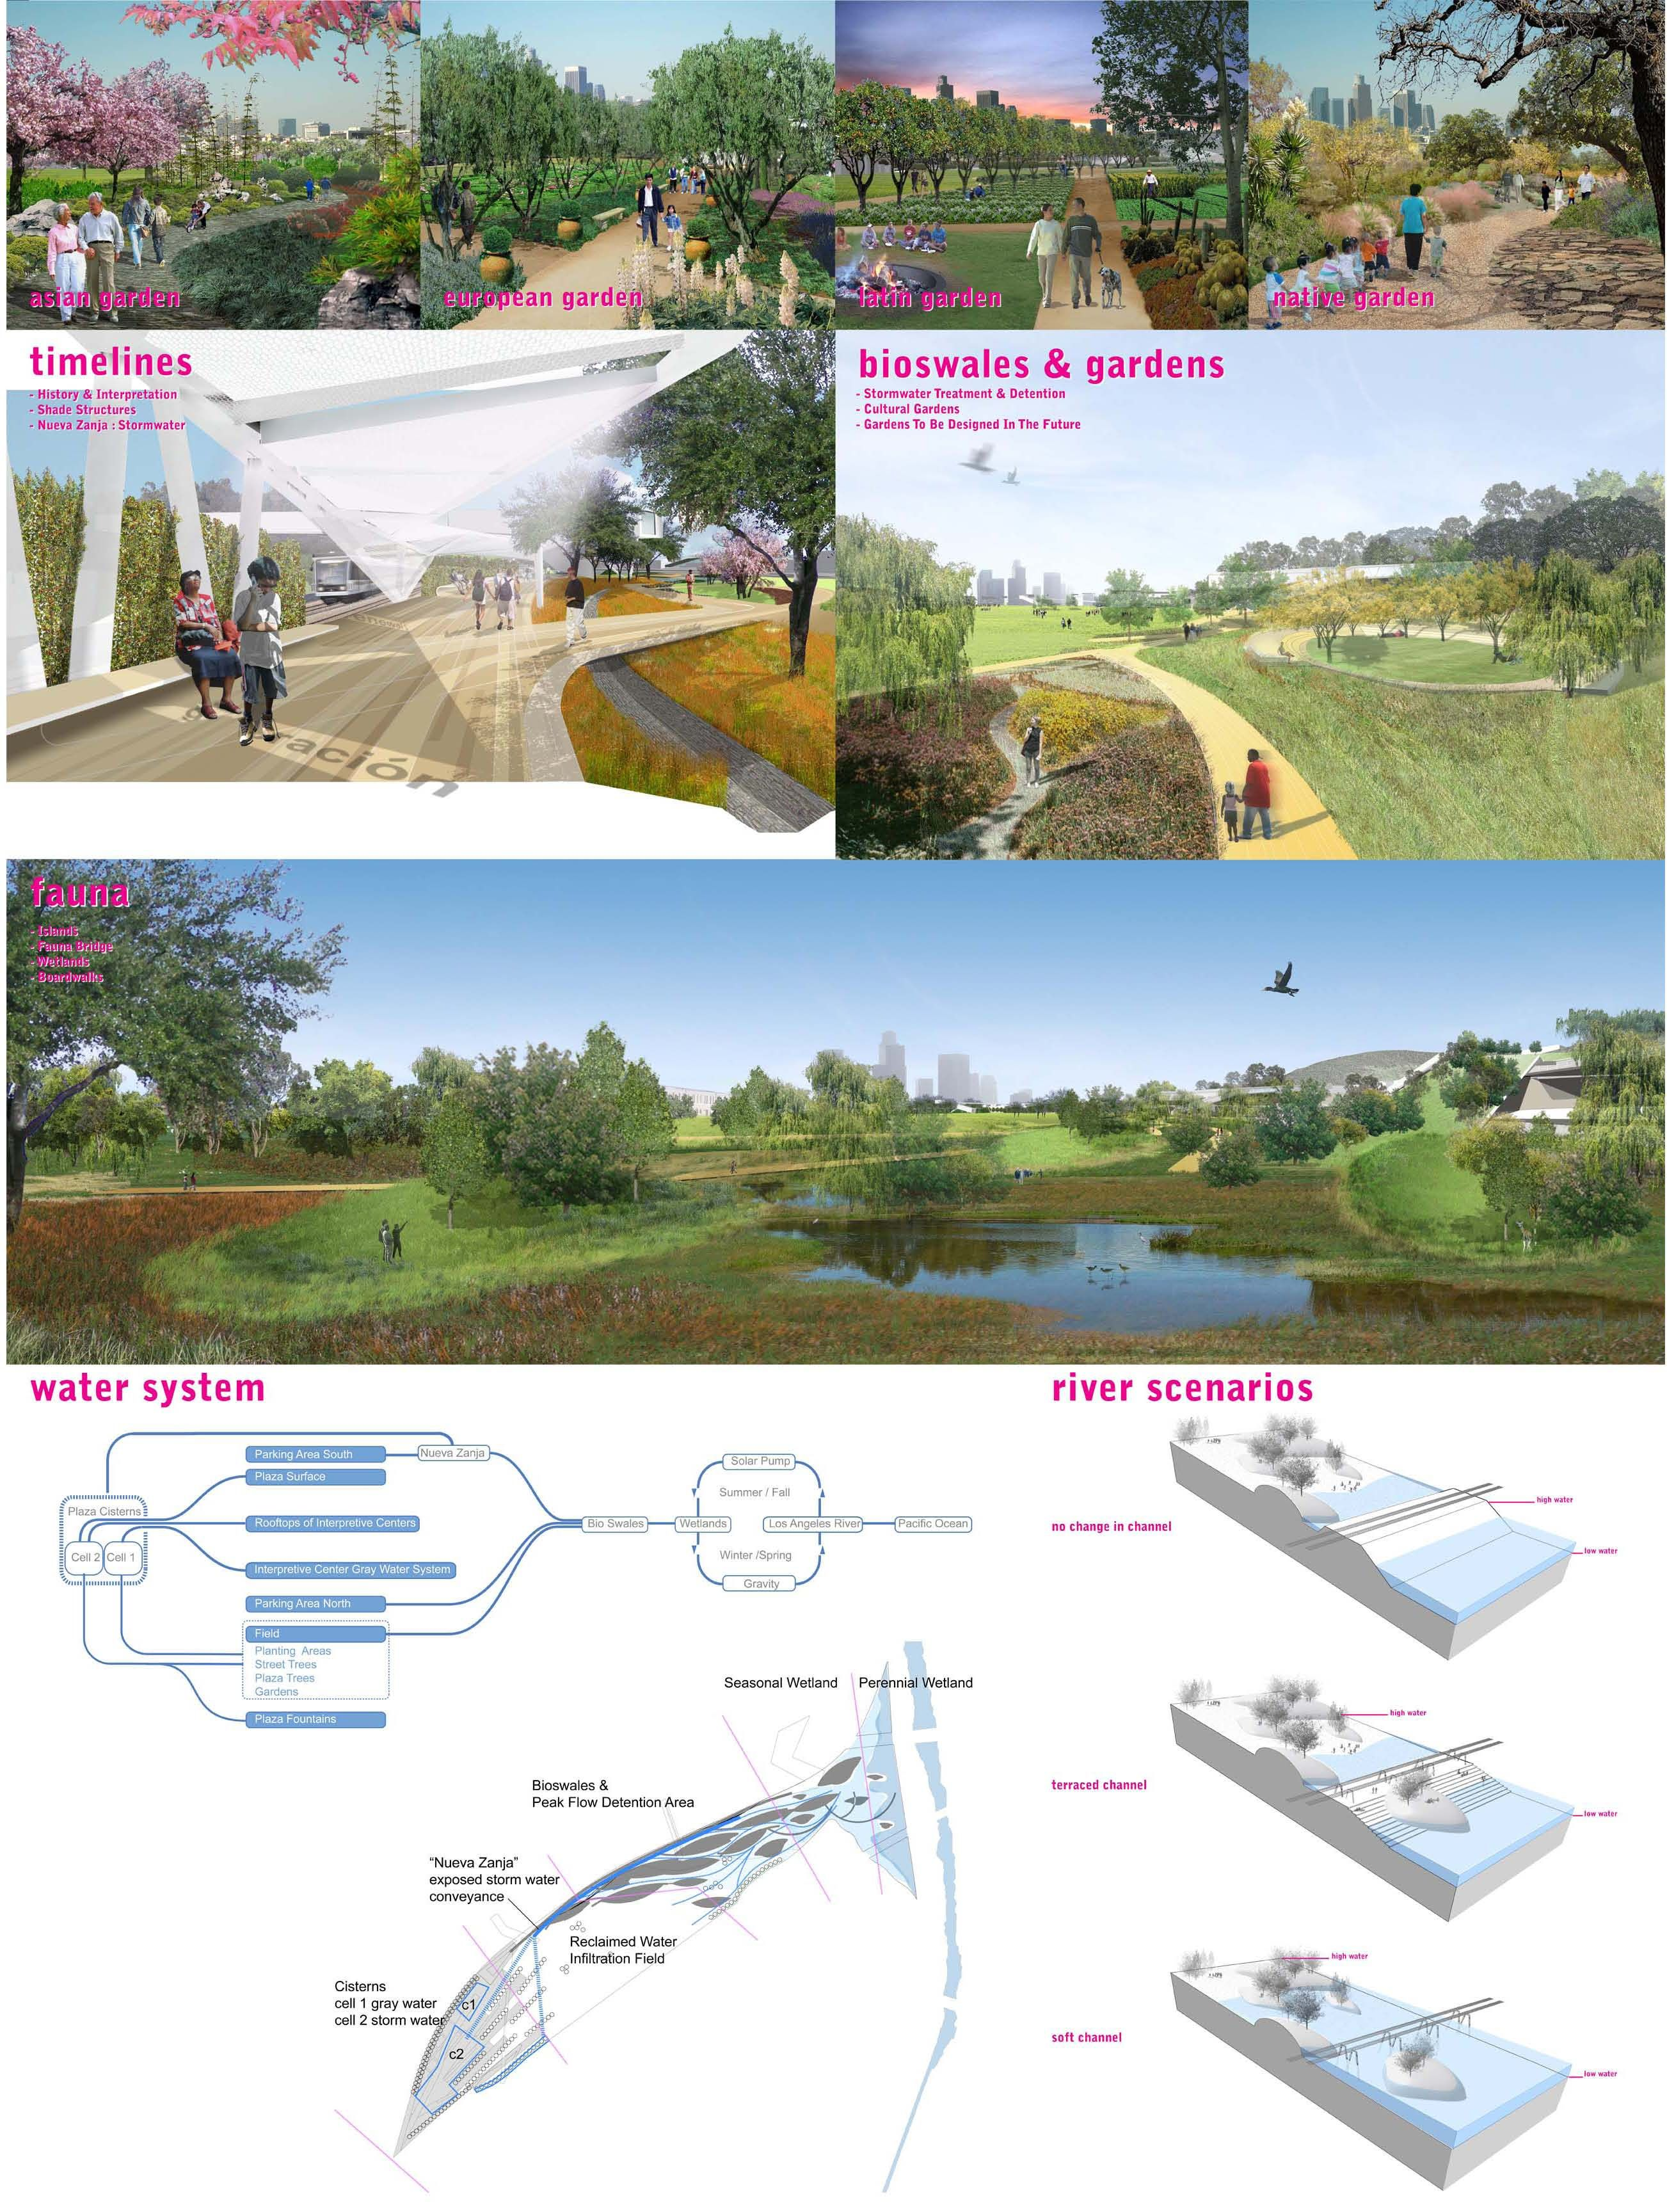 San francisco landscape architecture firms - In 2006 Hargreaves Associates A San Francisco Based Landscape Architecture Firm Won A Design